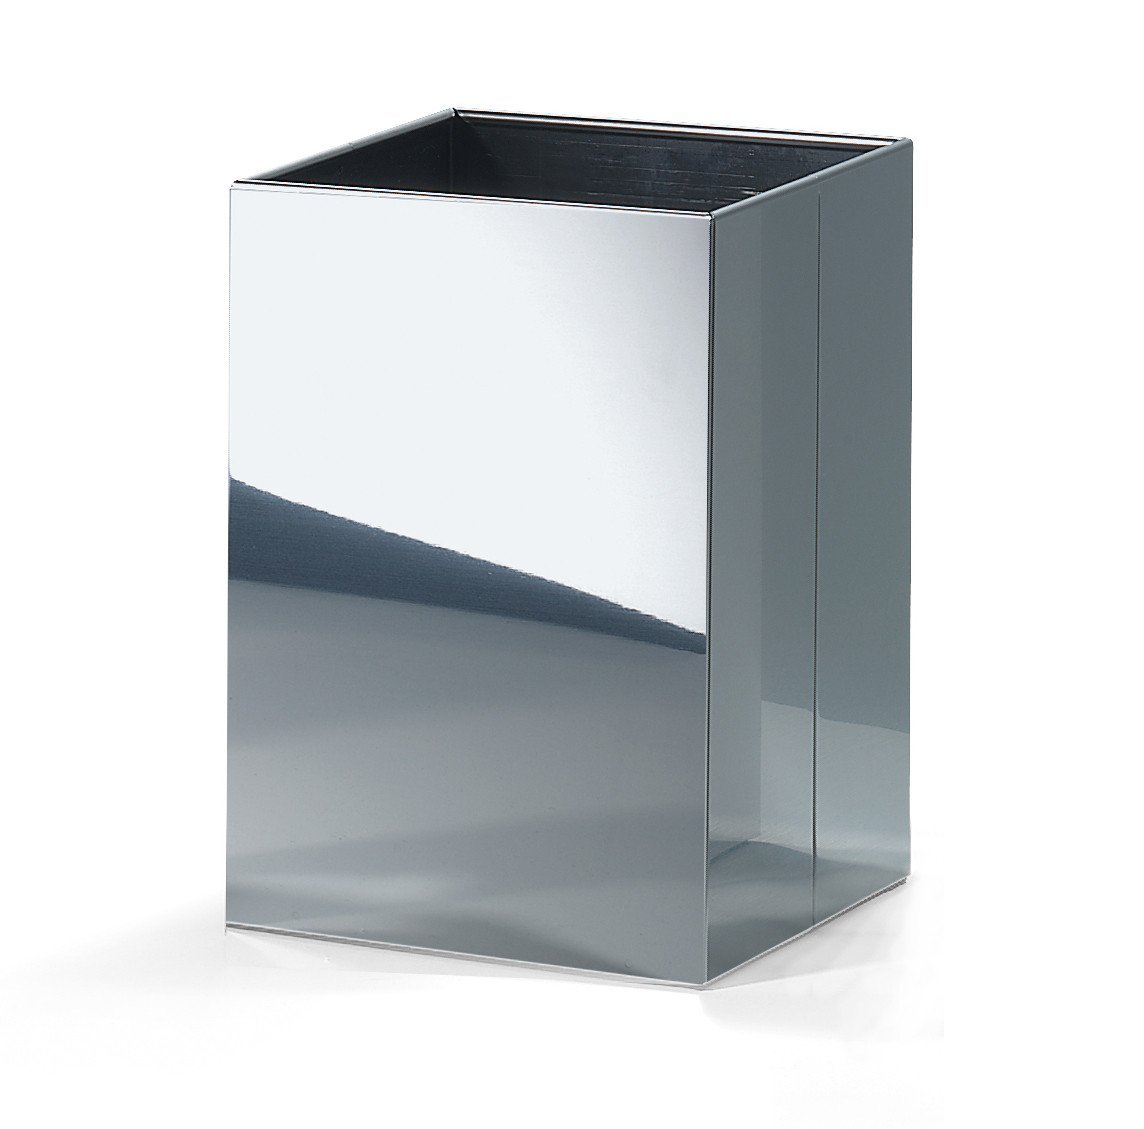 DWBA Square Open Top Trash Can, Stainless Steel Wastebasket W/O Lid Cover (Polished Chrome)